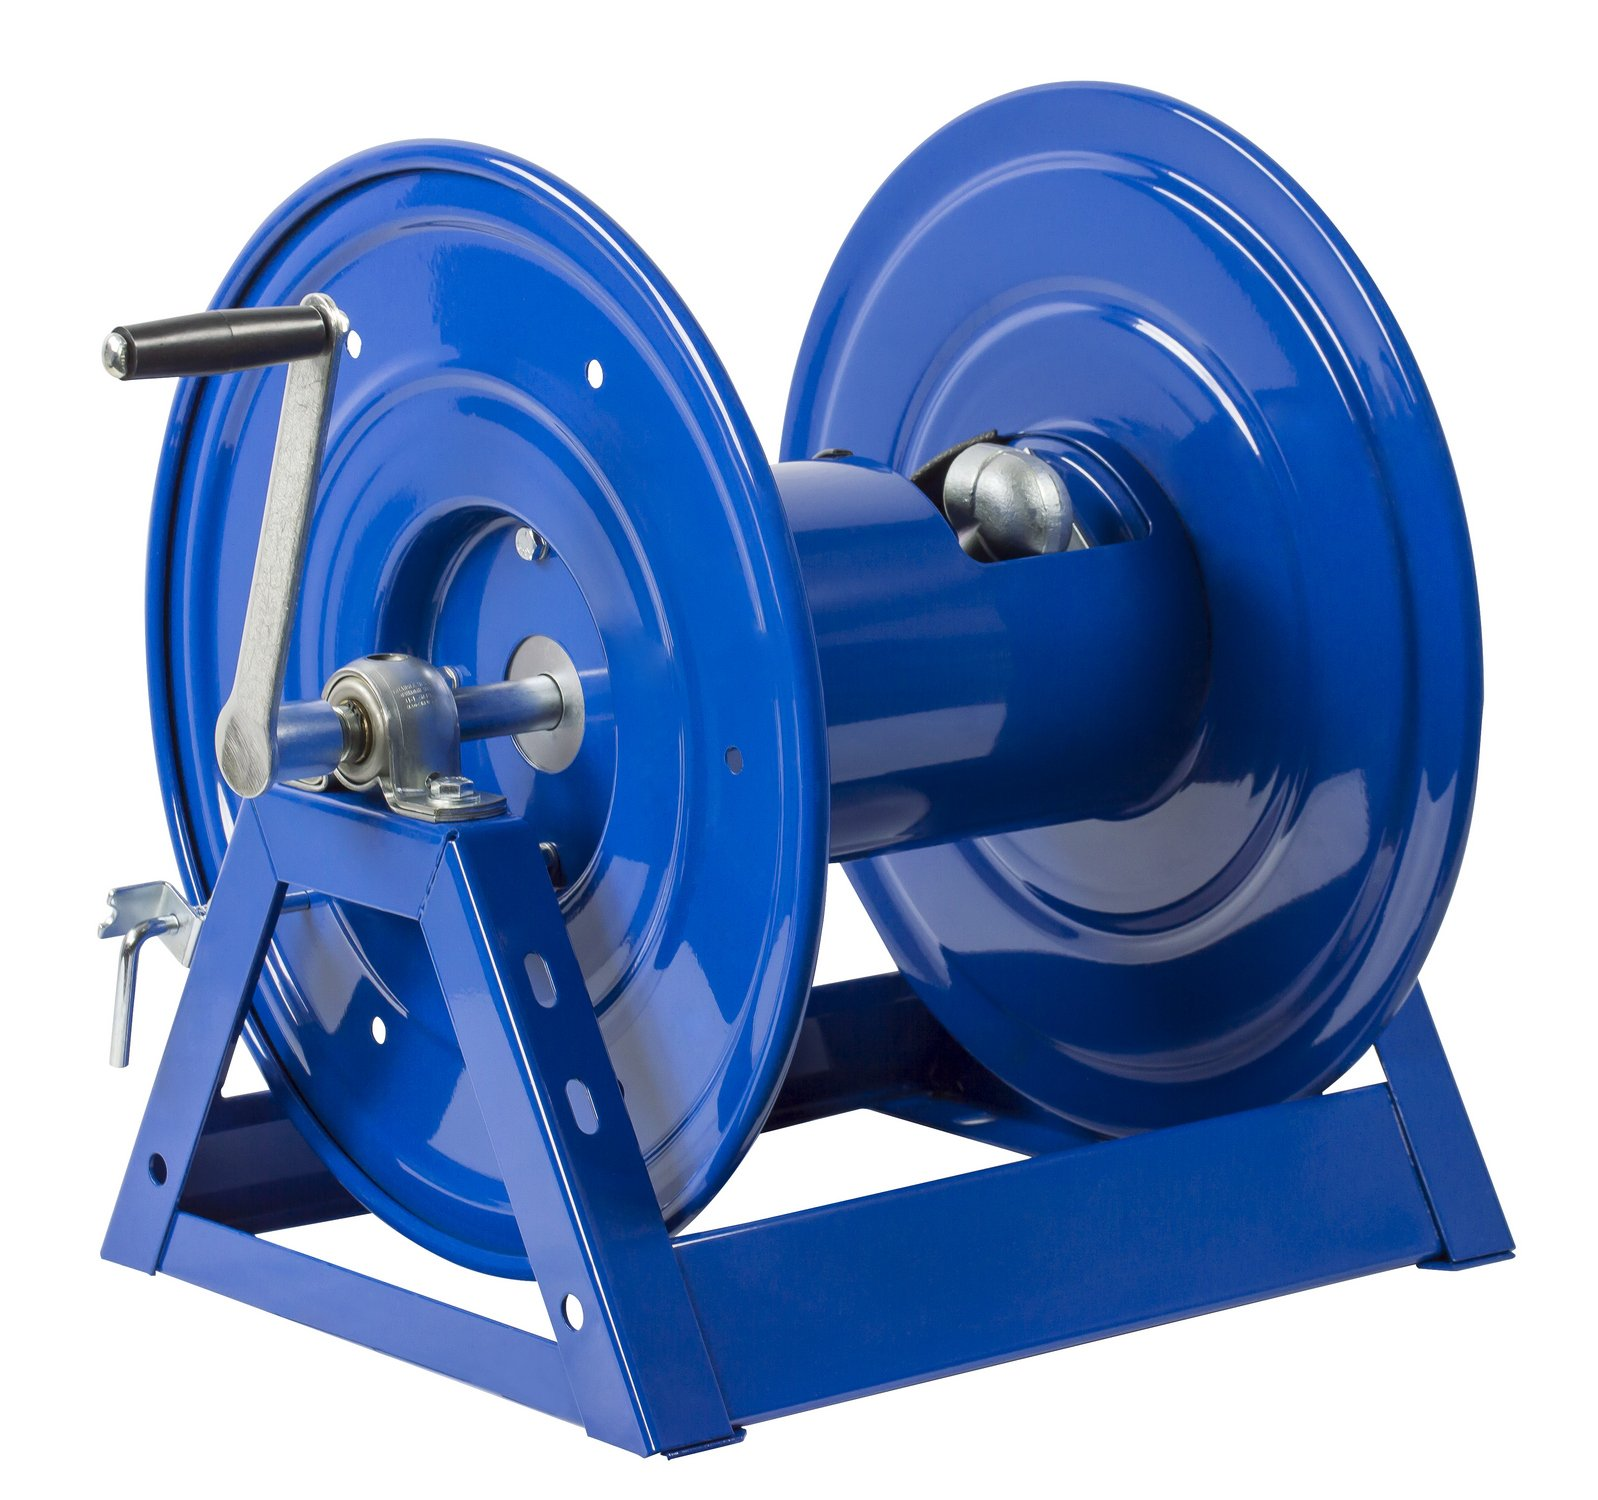 Coxreels 1125-4-100 Steel Hand Crank Hose Reel, 1/2'' Hose I.D., 100' Hose Capacity, 3,000 PSI, without Hose, Made in USA by Coxreels (Image #9)